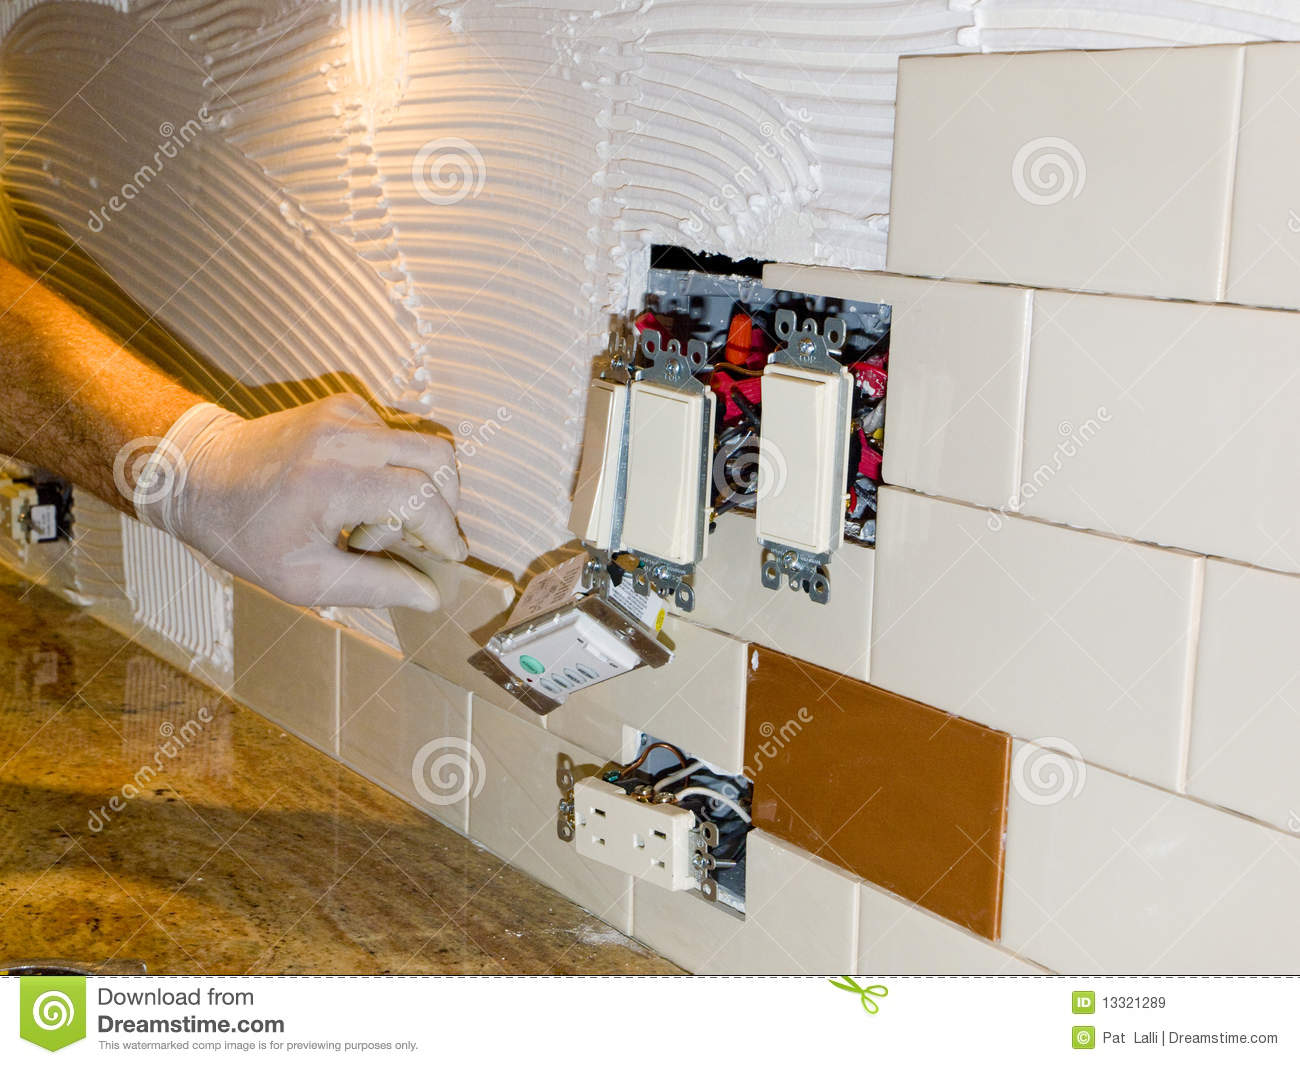 Ceramic tile installation on kitchen backsplash 10 stock image royalty free stock photo download ceramic tile installation on kitchen backsplash dailygadgetfo Images